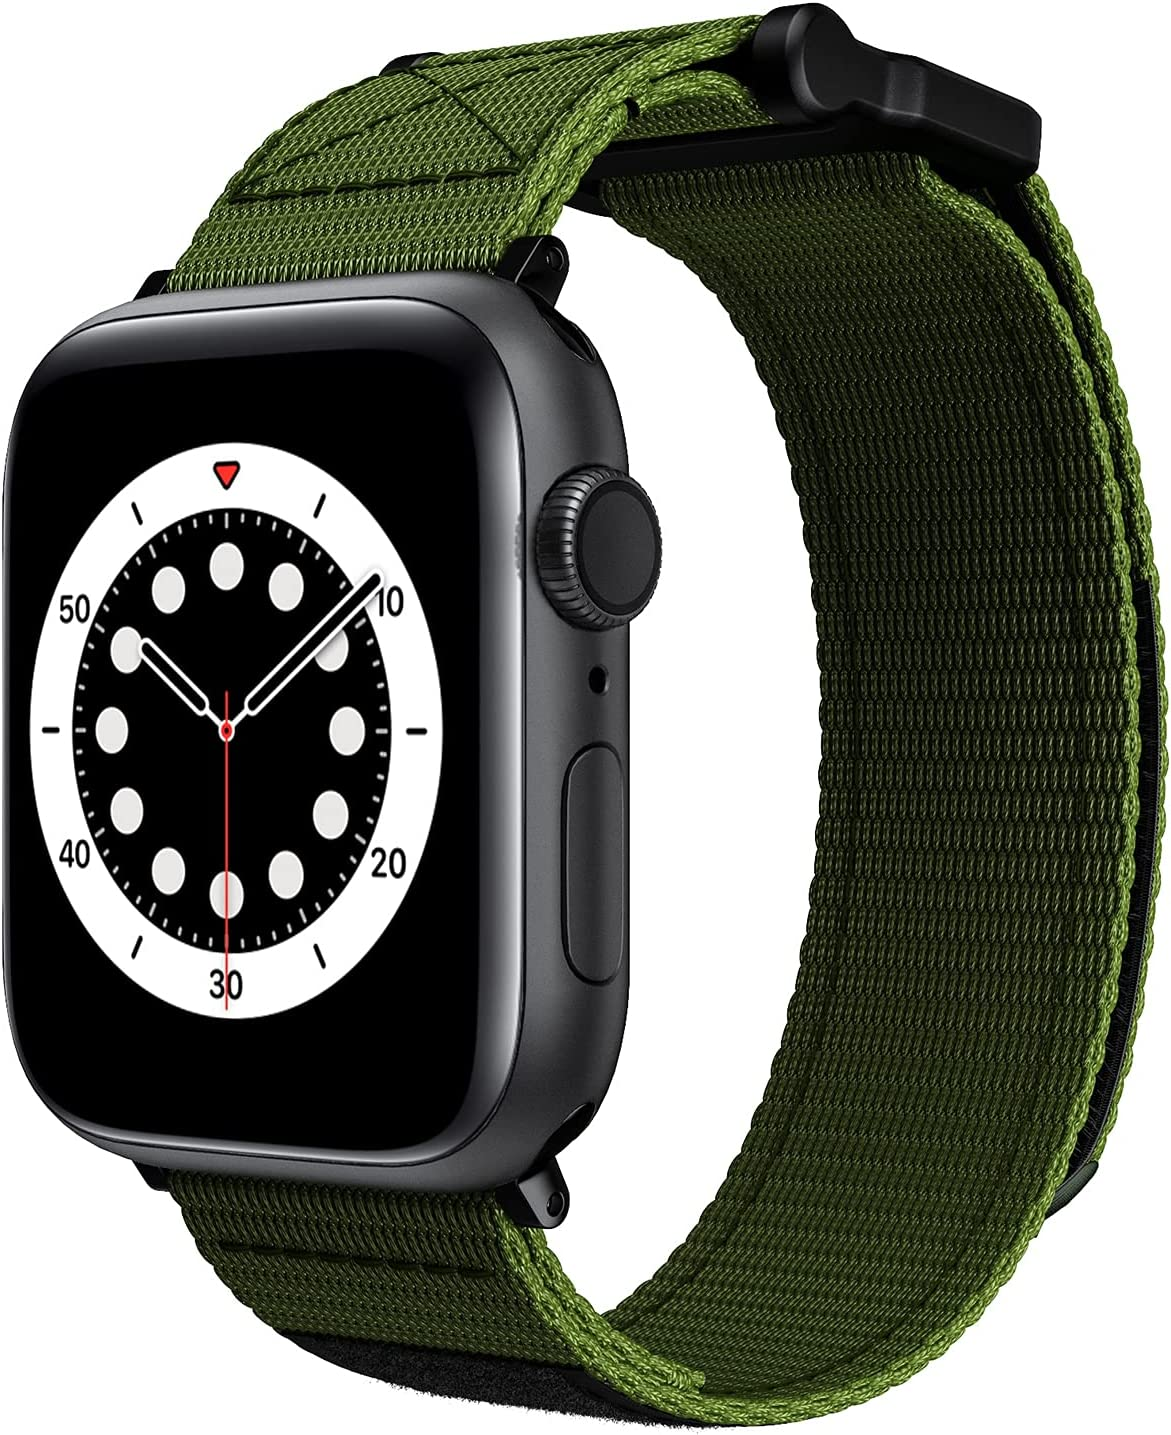 Velcro Watch Band for Apple Watch 42/44mm Men Sport Loop Nylon Adjustable Woven Bands Replacement Strap for Iwatch 42/44mm(Army Green)